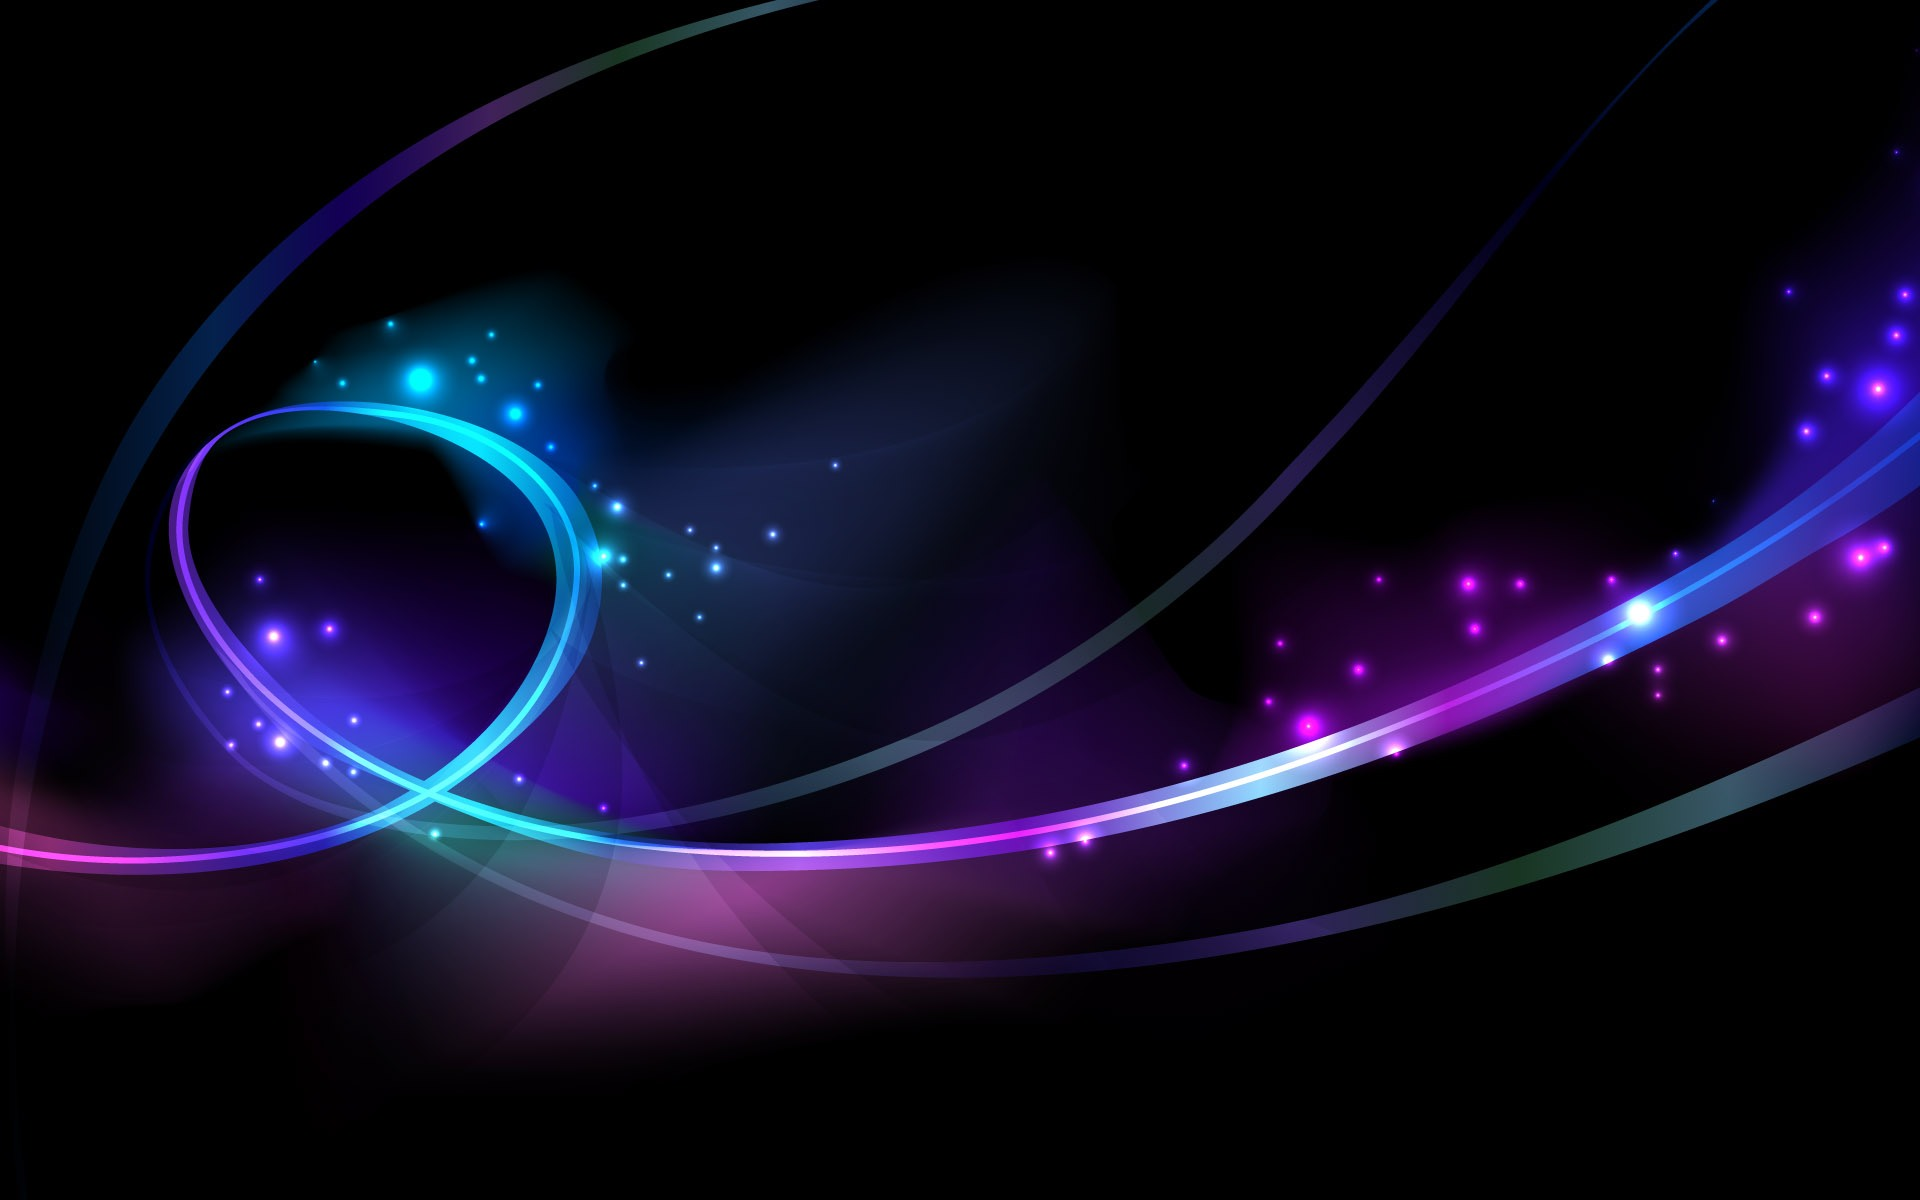 twirl blue purple wallpaper scenery desktop original 1920x1200